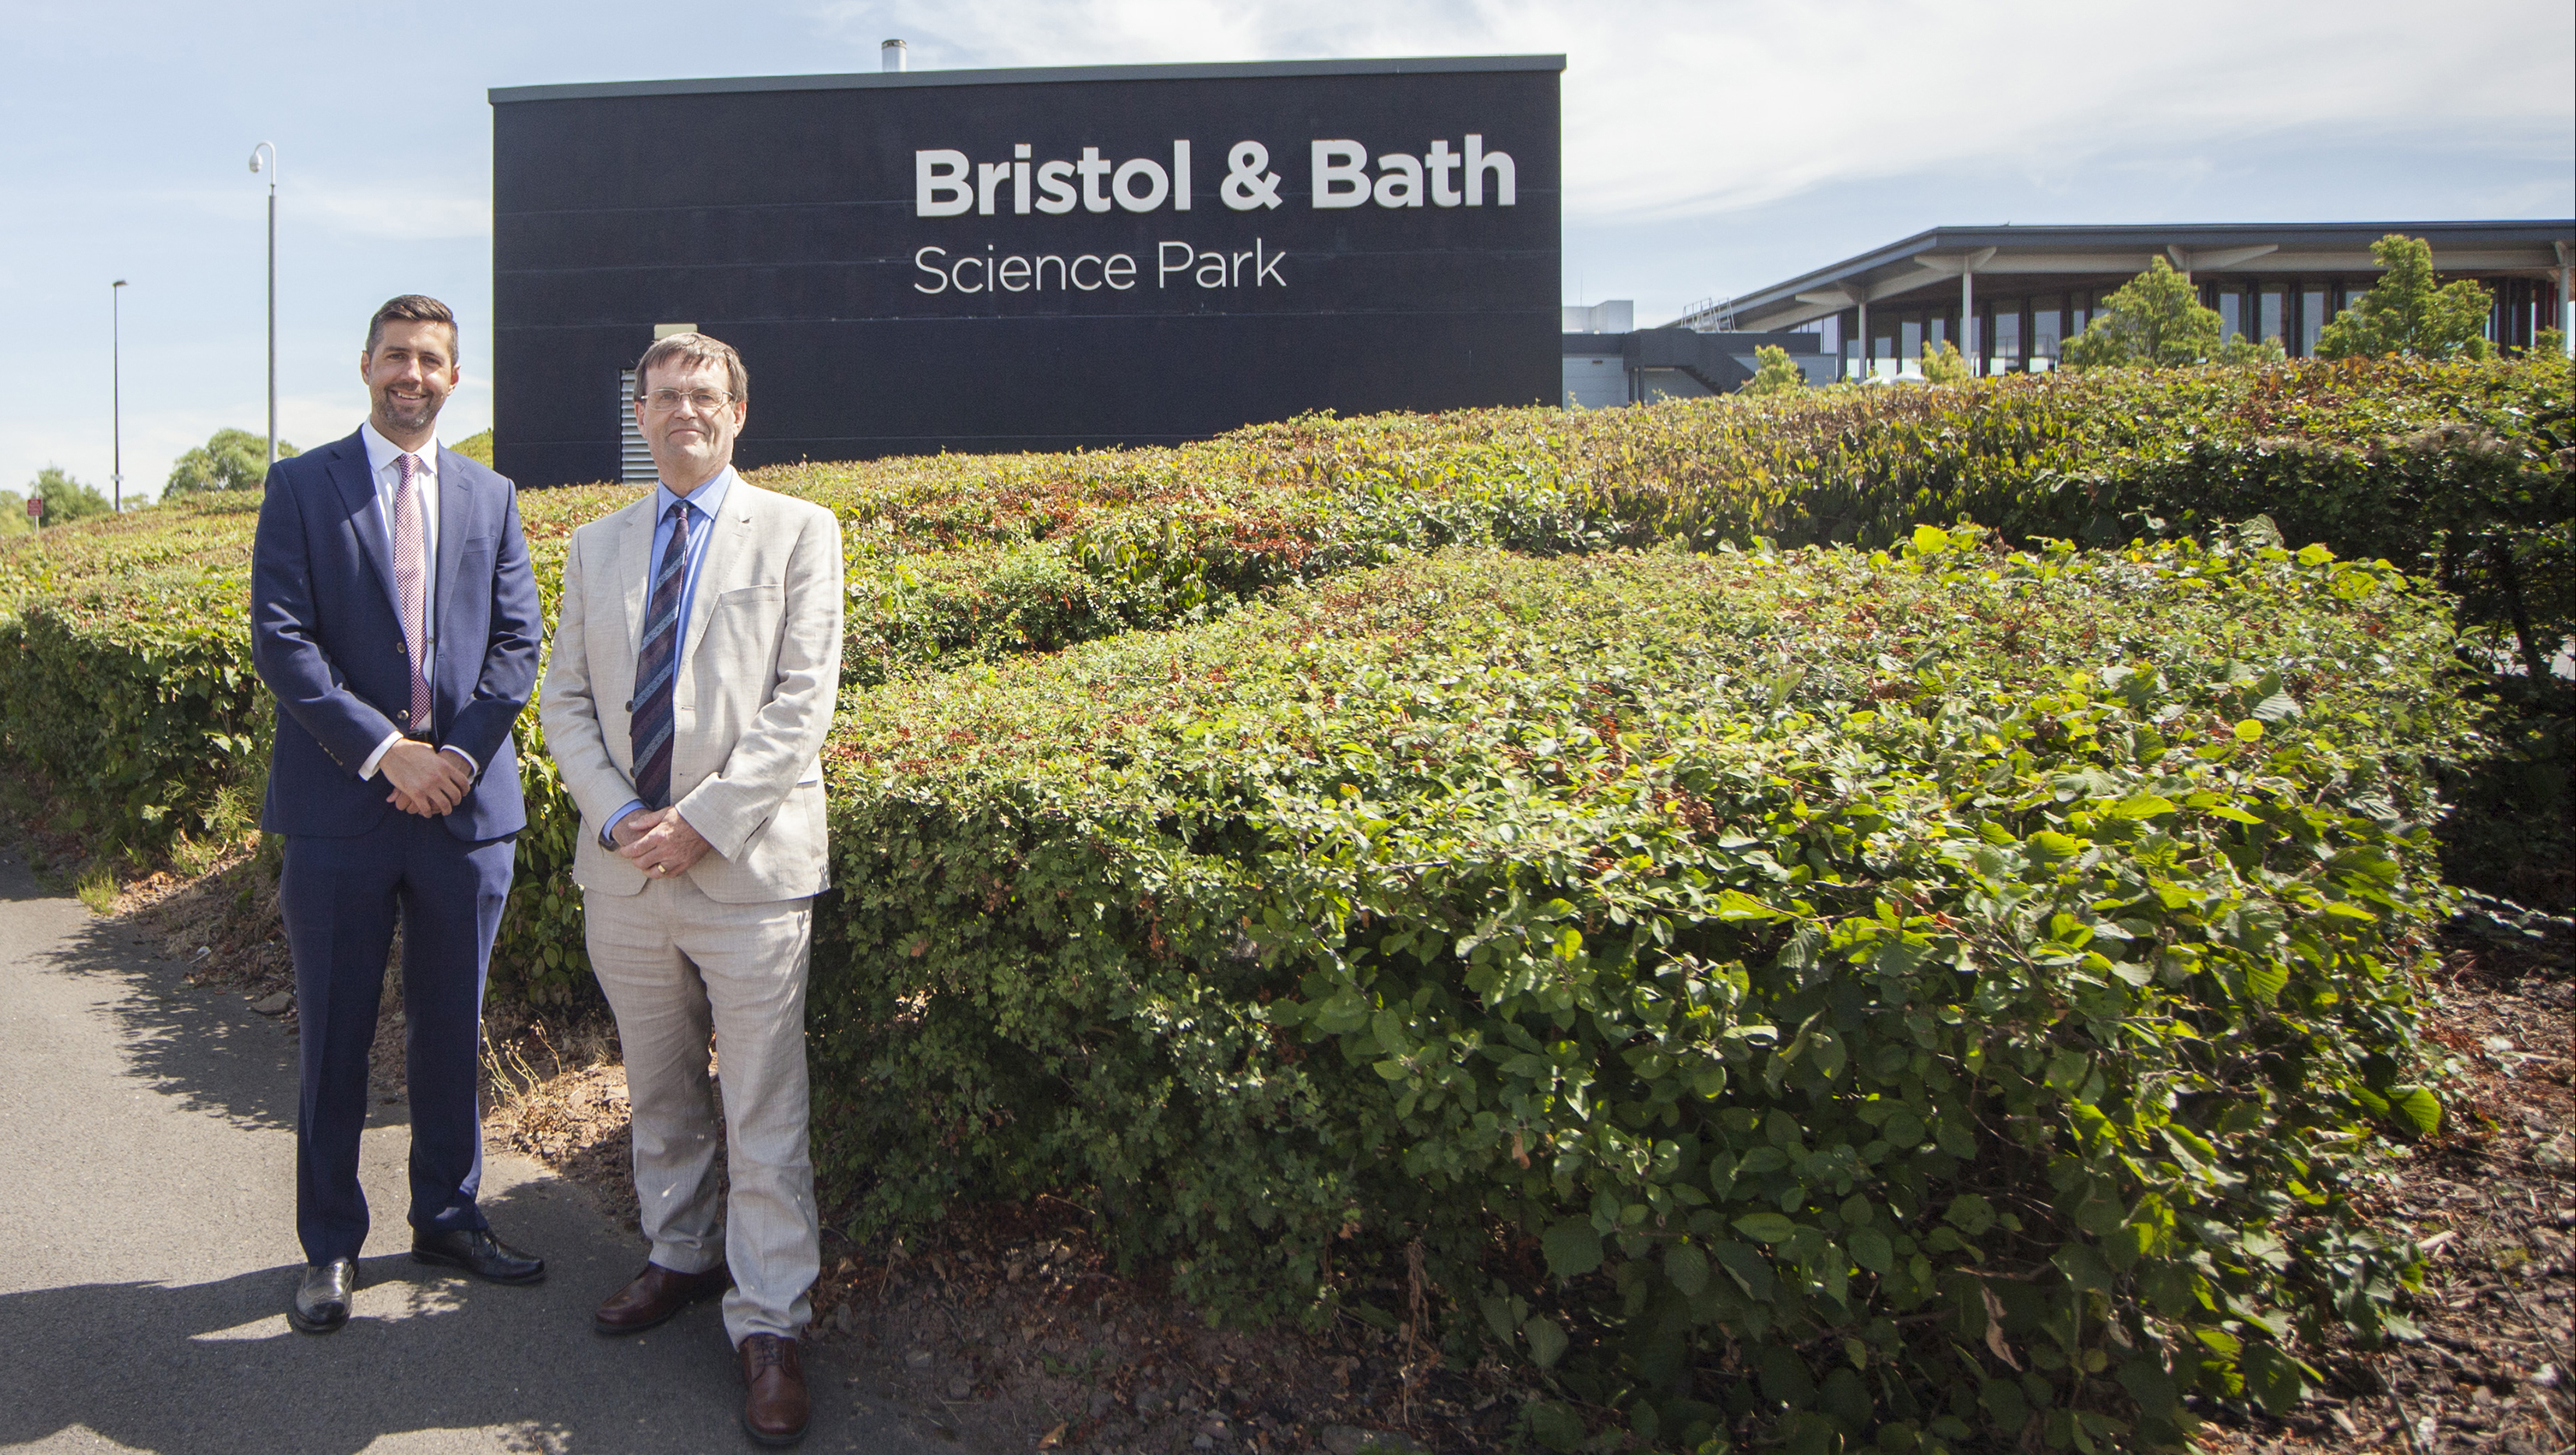 Vice-President (Implementation) at the University of Bath, Professor Steve Egan, and Leader of South Gloucestershire Council, Mr Toby Savage, celebrate the joint purchase of the Bristol & Bath Science Park.